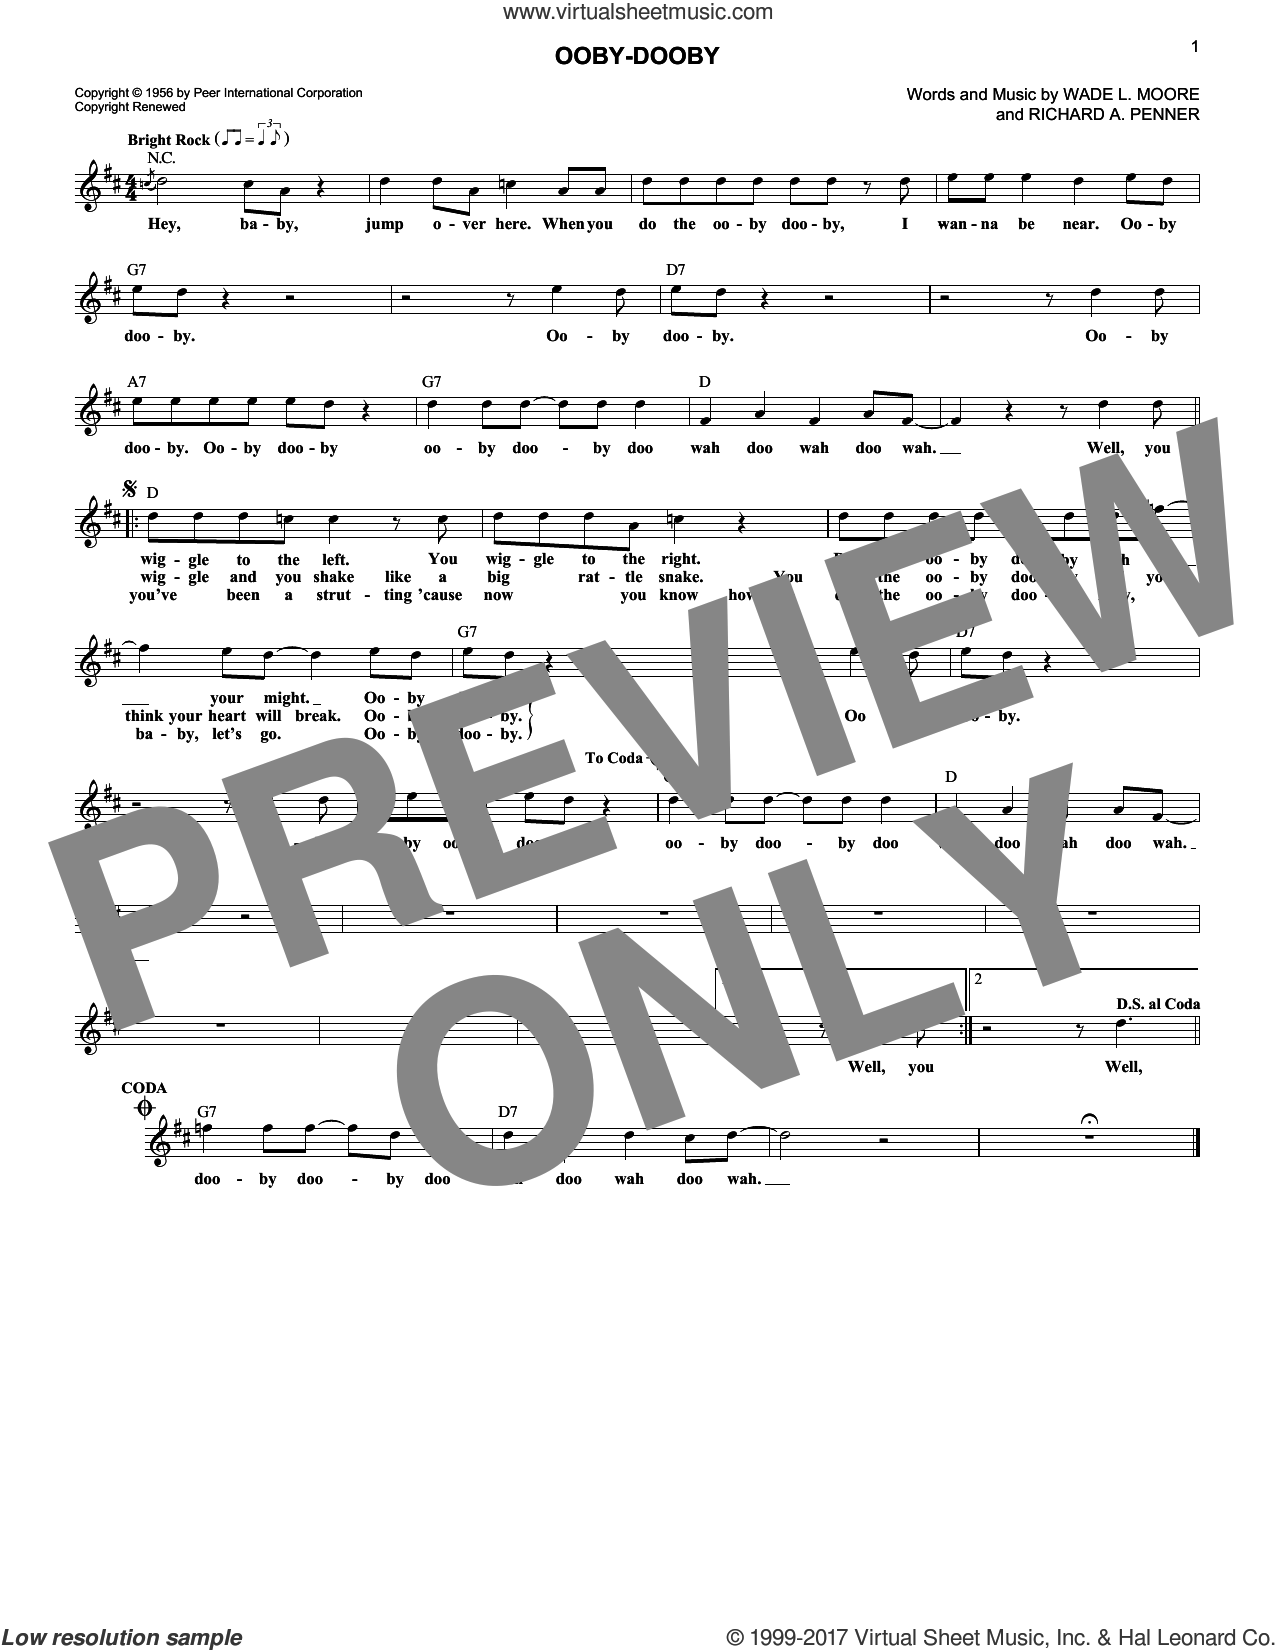 Ooby-Dooby sheet music for voice and other instruments (fake book) by Roy Orbison, Richard A. Penner and Wade L. Moore, intermediate skill level